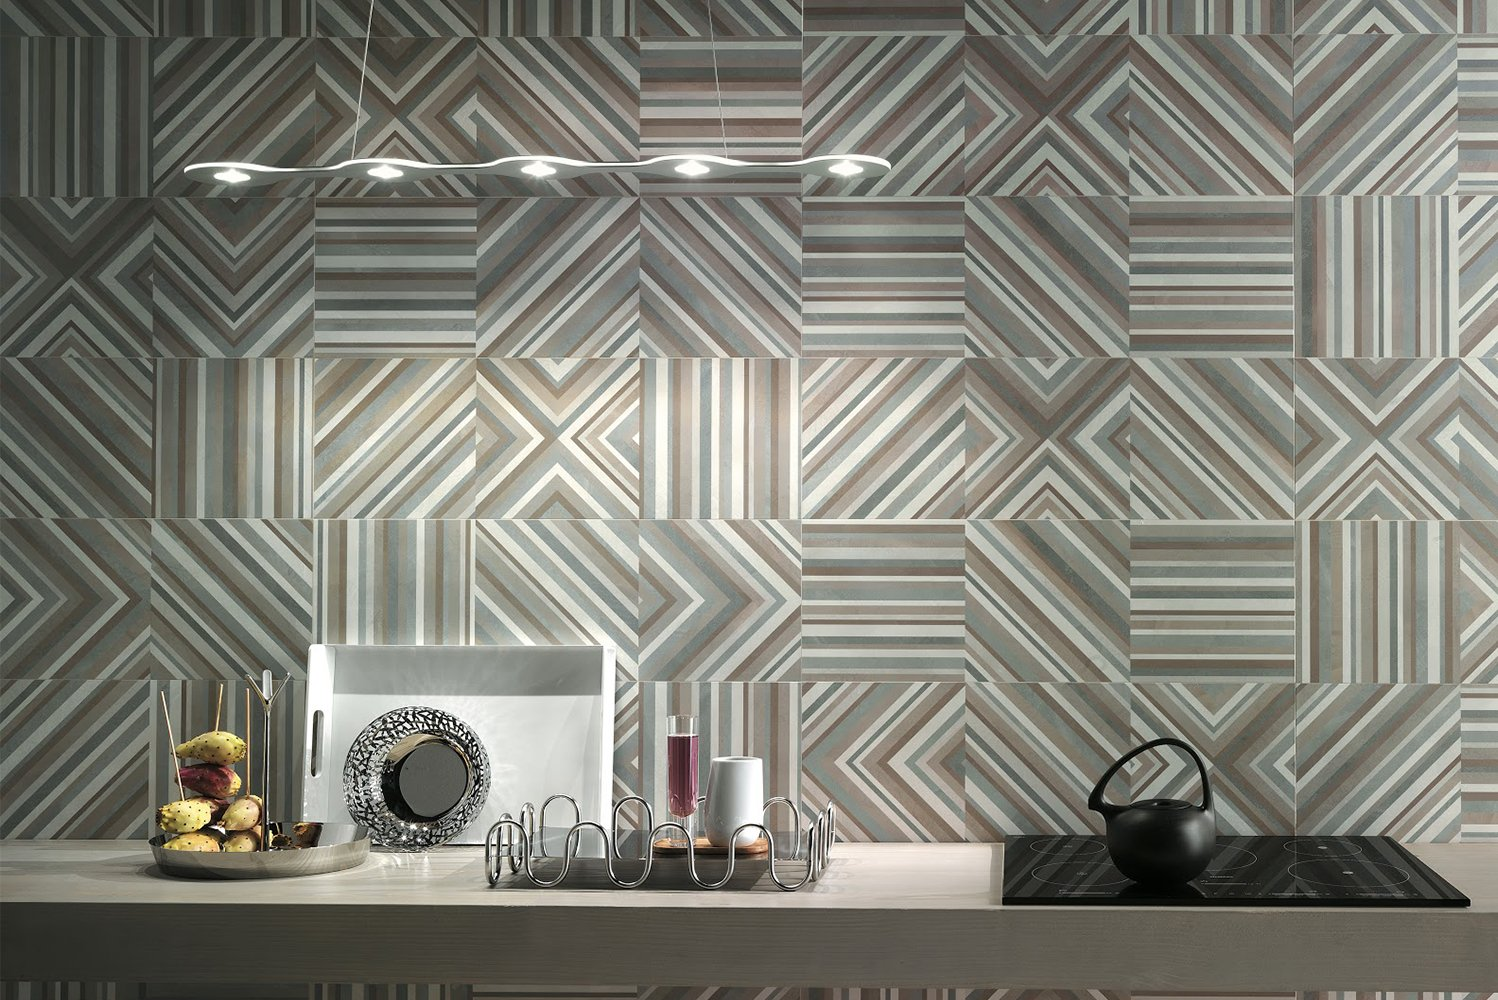 Nemo Tile + Stone launched the Studio collection of ceramic wall tiles.